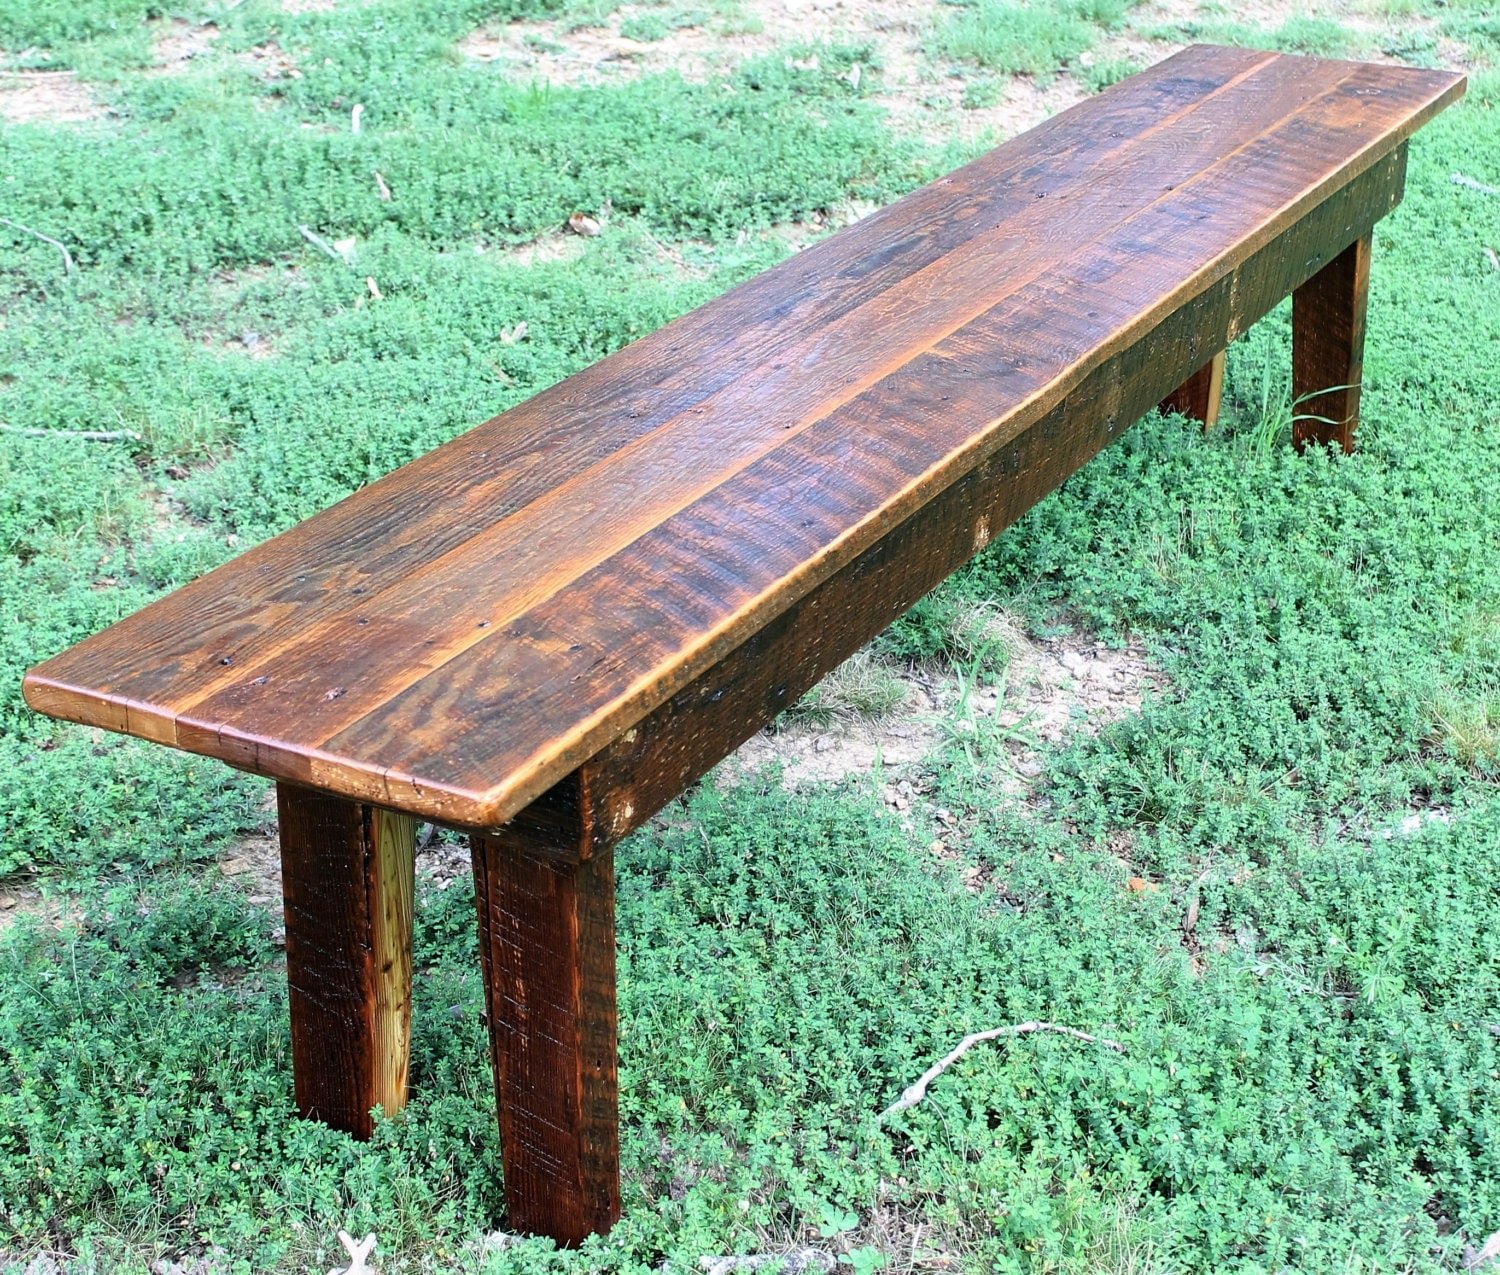 Bench wood rustic reclaimed